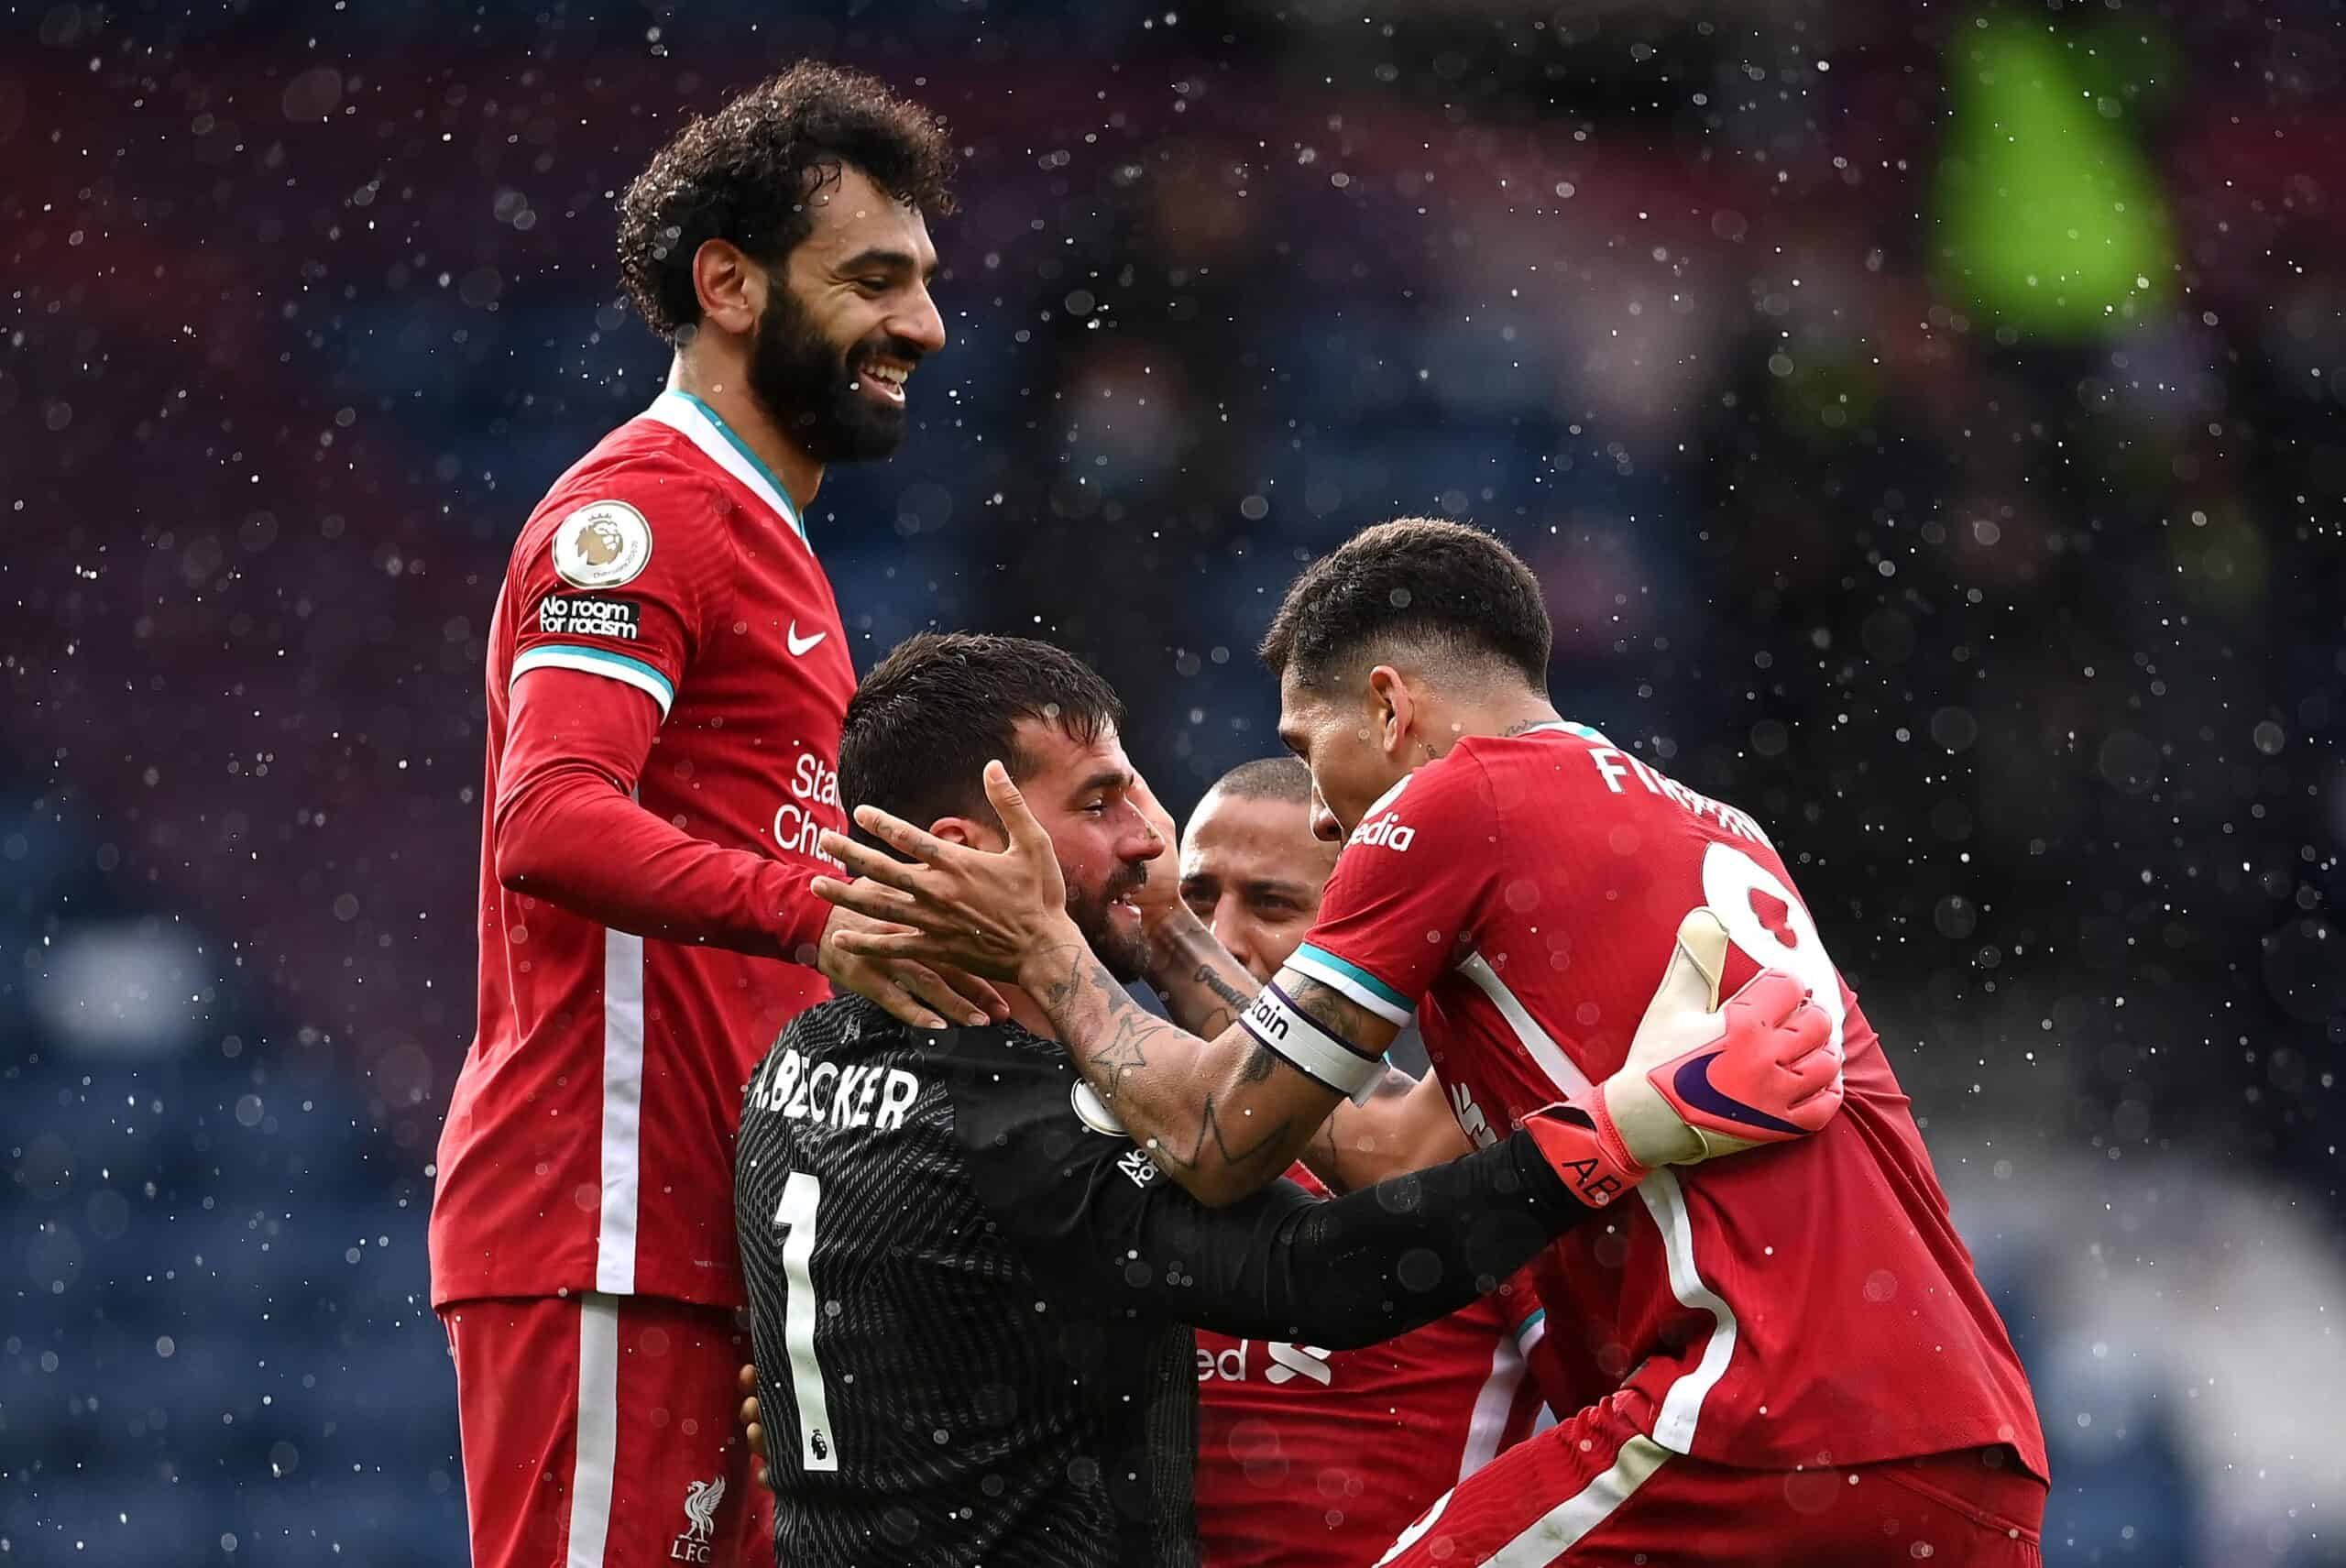 Liverpool goalkeeper Alisson headed home Liverpool's stoppage-time winner at West Brom (Rui Vieira/PA)